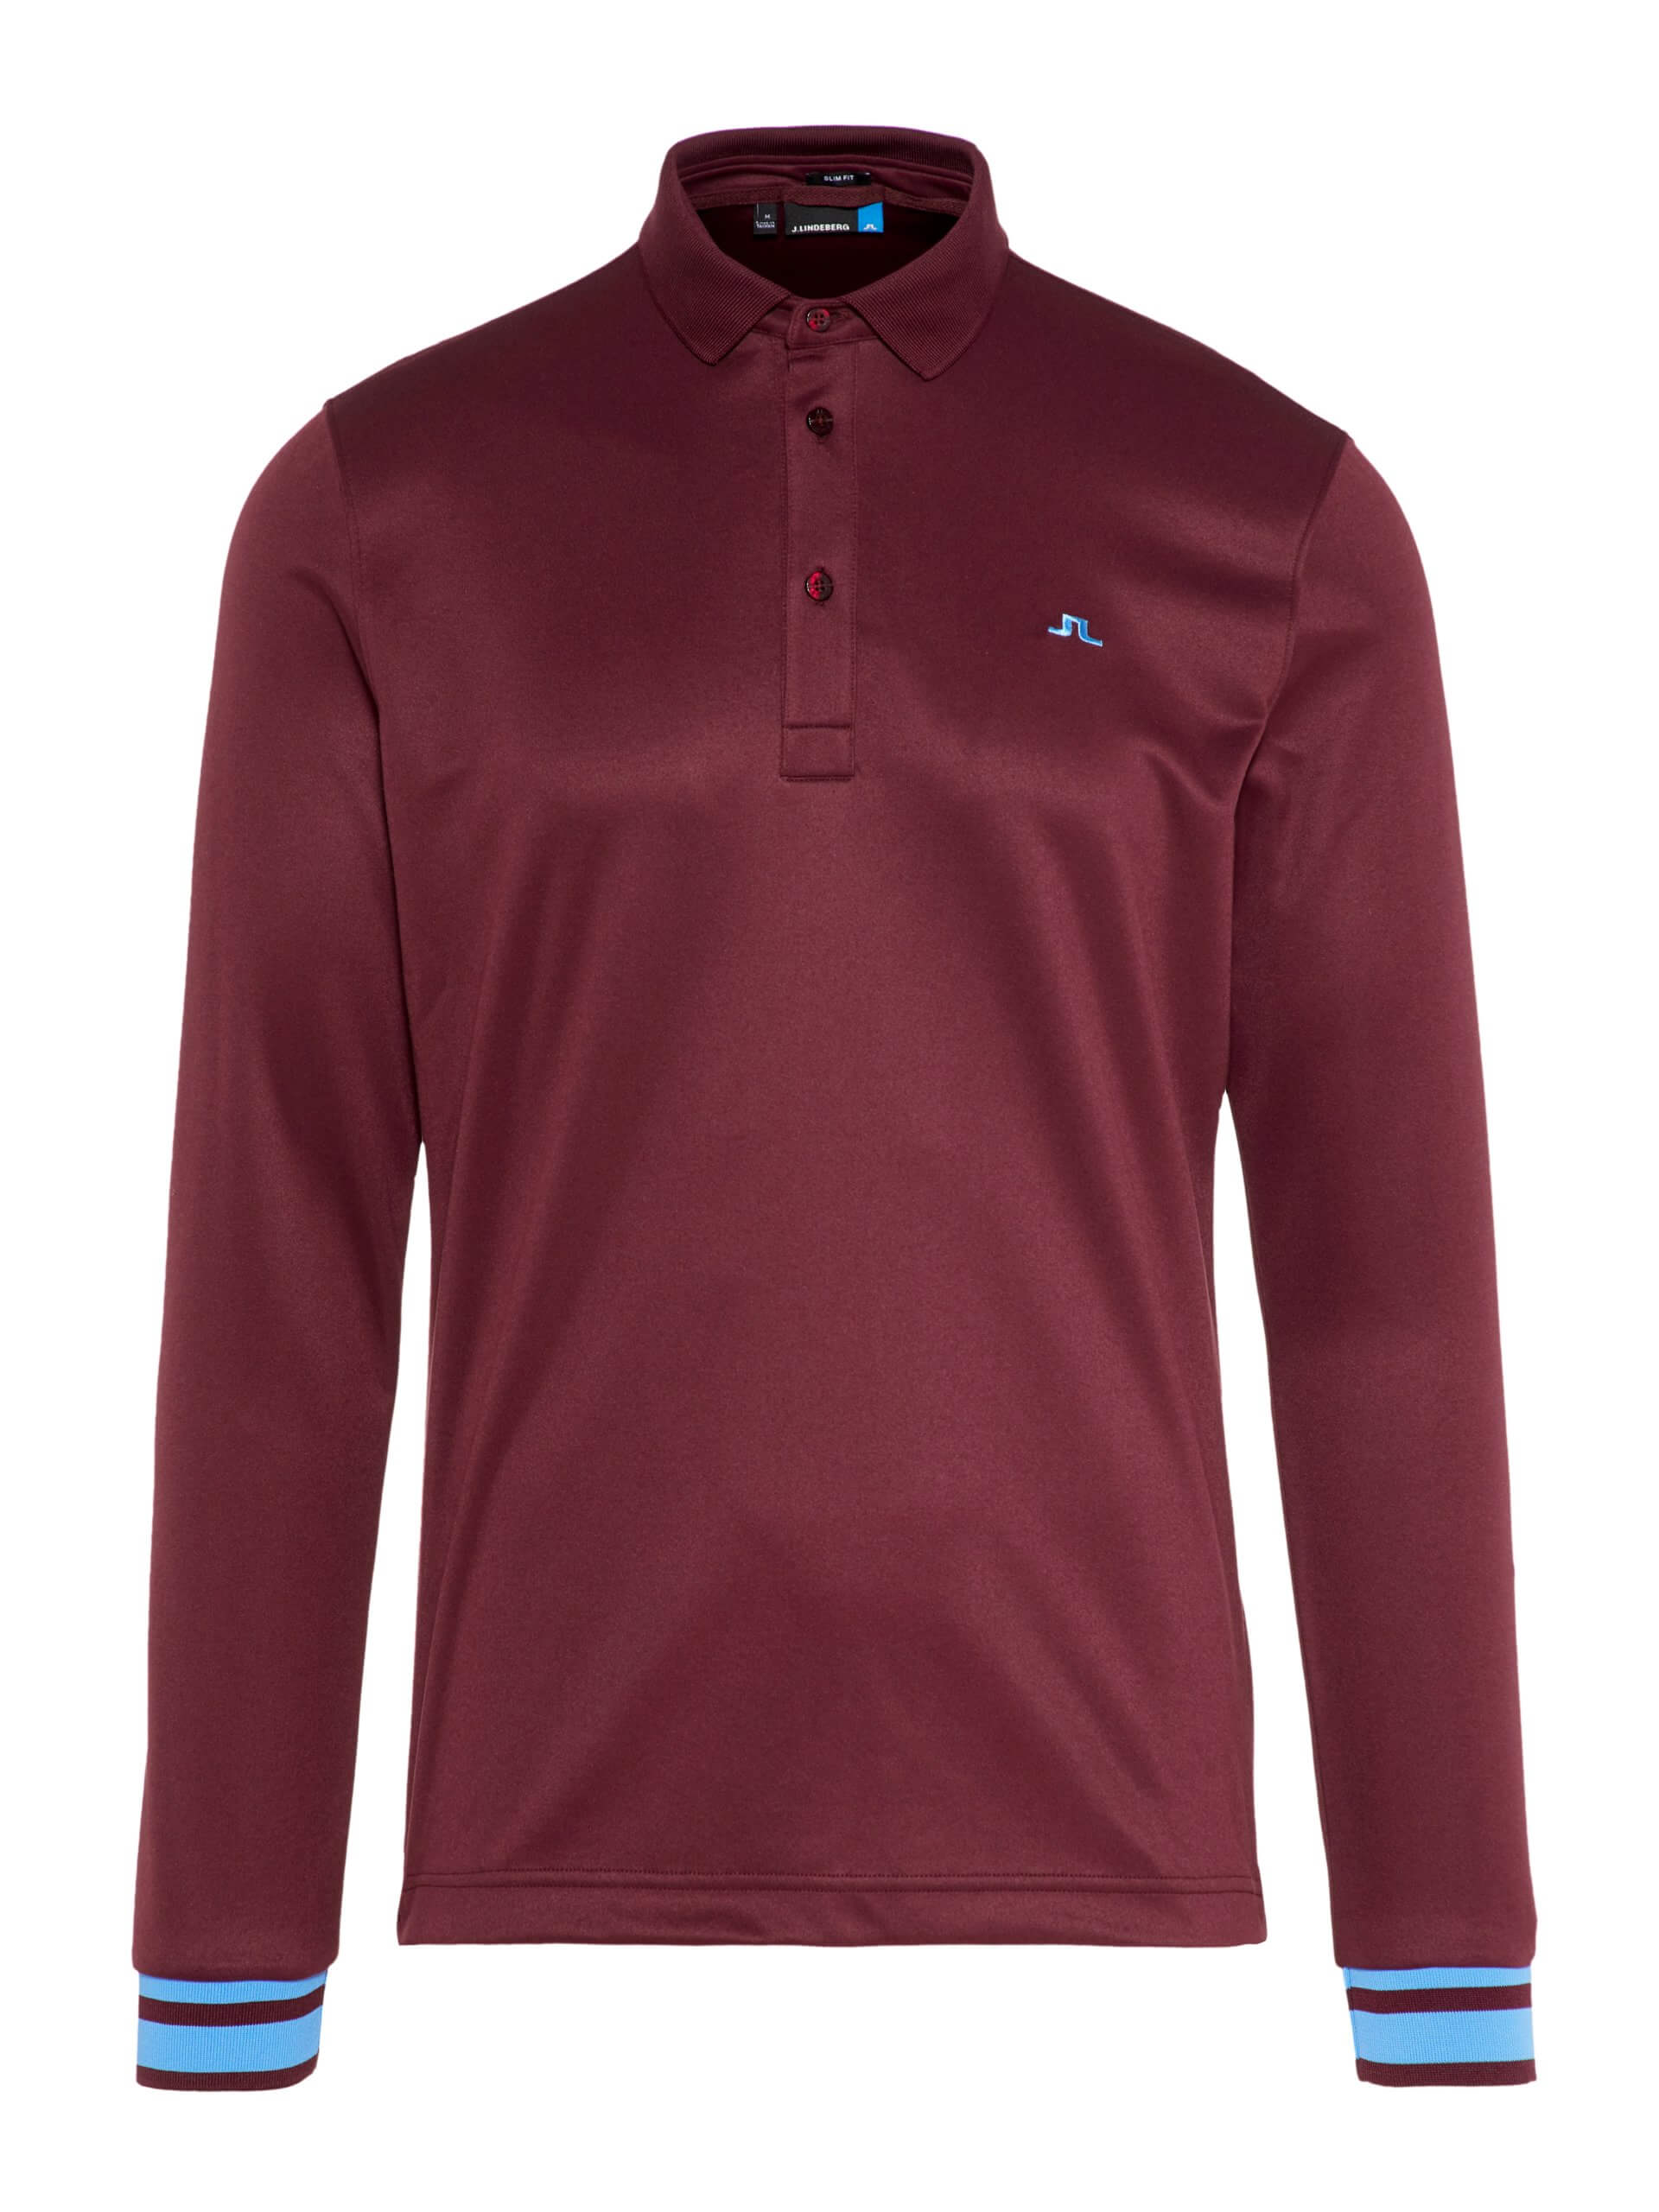 Olle LS polo shirt in Dark Mahogany with blue rings on the cuffs